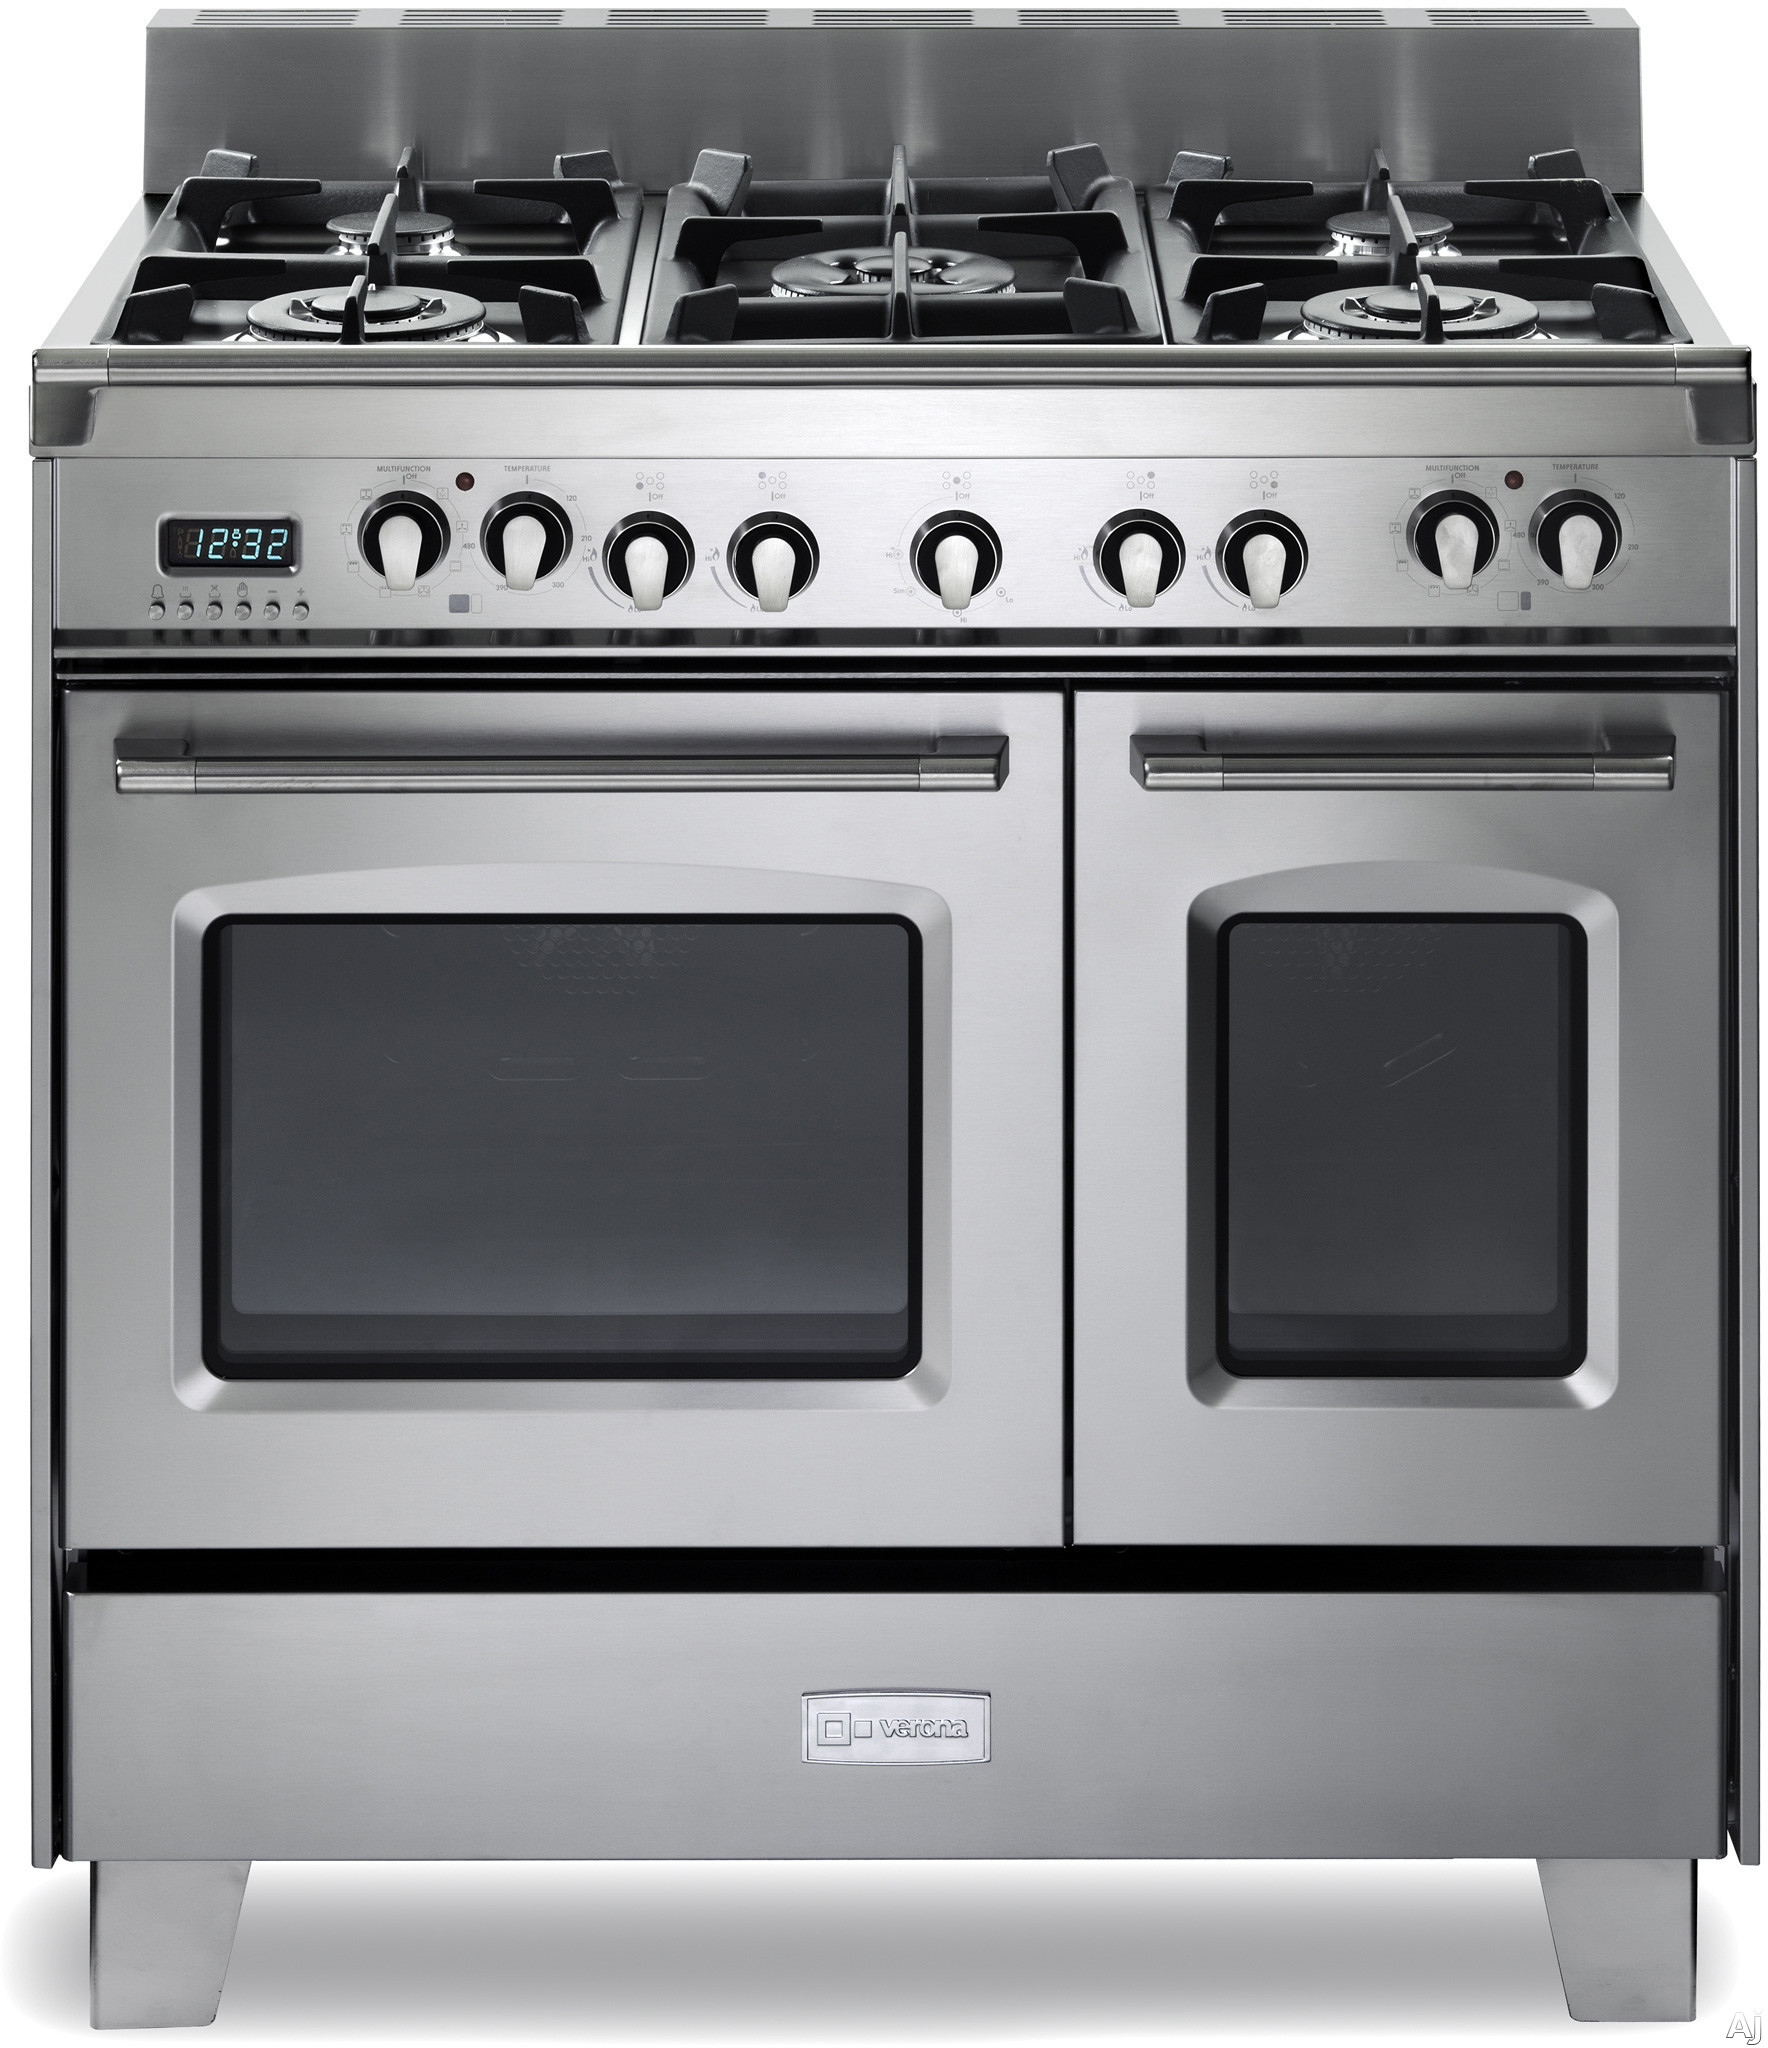 Verona Classic Series VCLFSGE365D 36 Inch Pro Style Dual Fuel Range with 5 Sealed Burners 24 cu ft European Convection Main Oven Manual Clean Digital Clock Timer Glide Rack and Storage Drawer